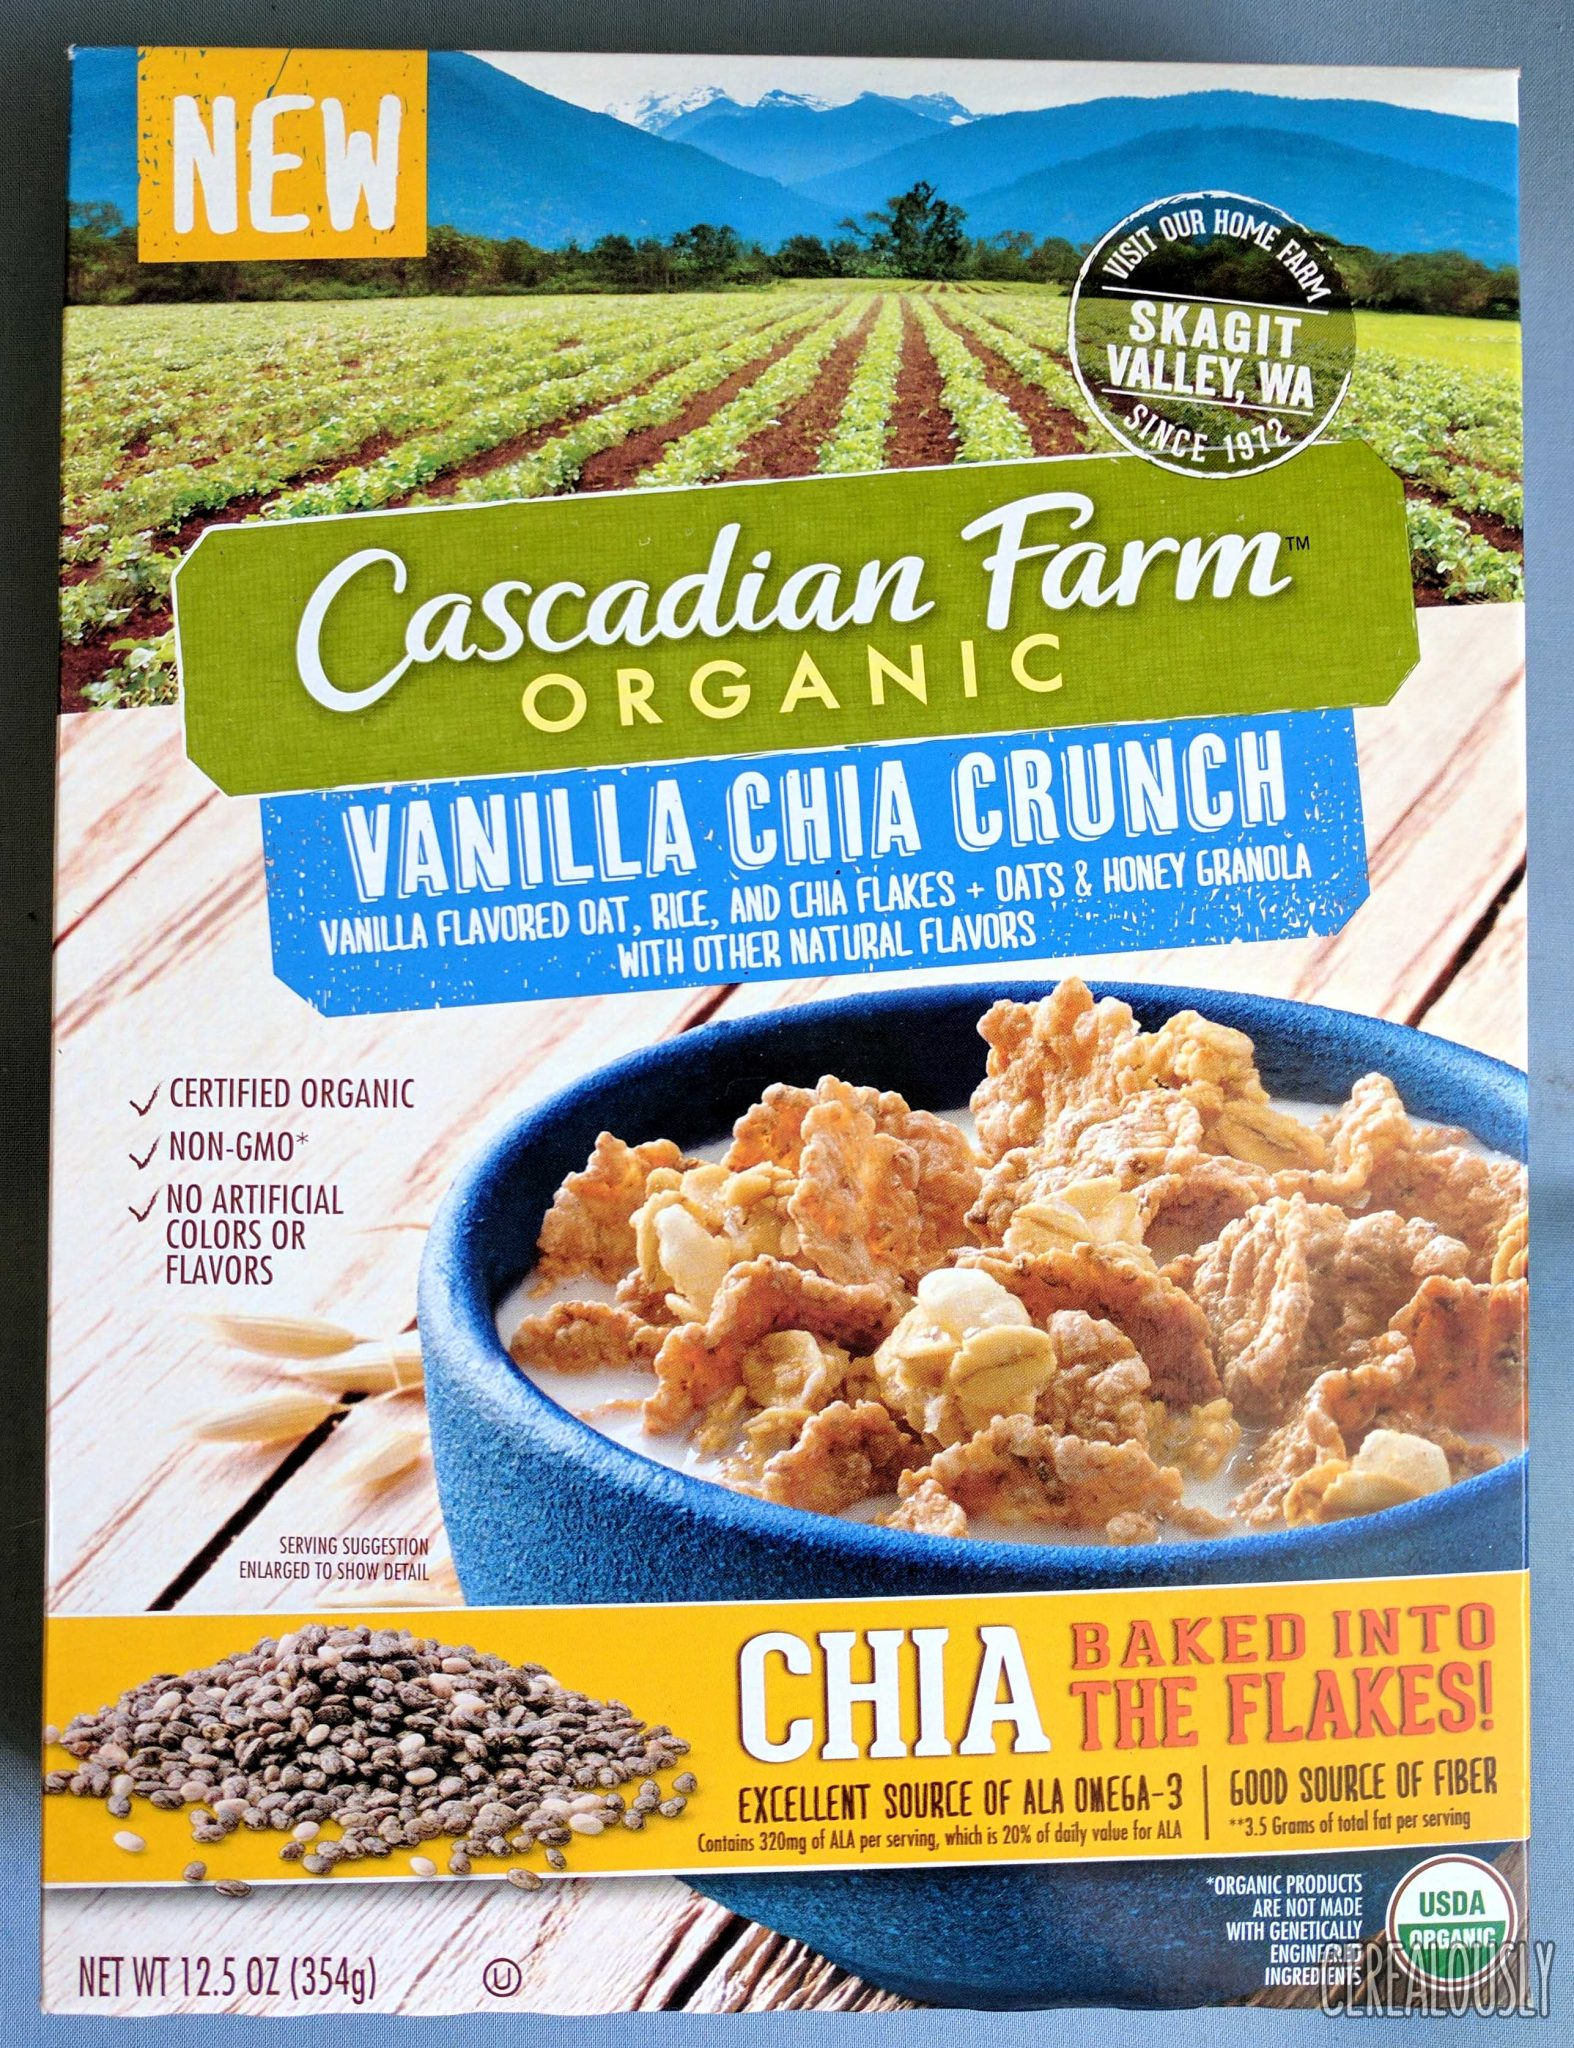 Cascadian Farm Organic Cereal or Granola Deal at Walmart!!